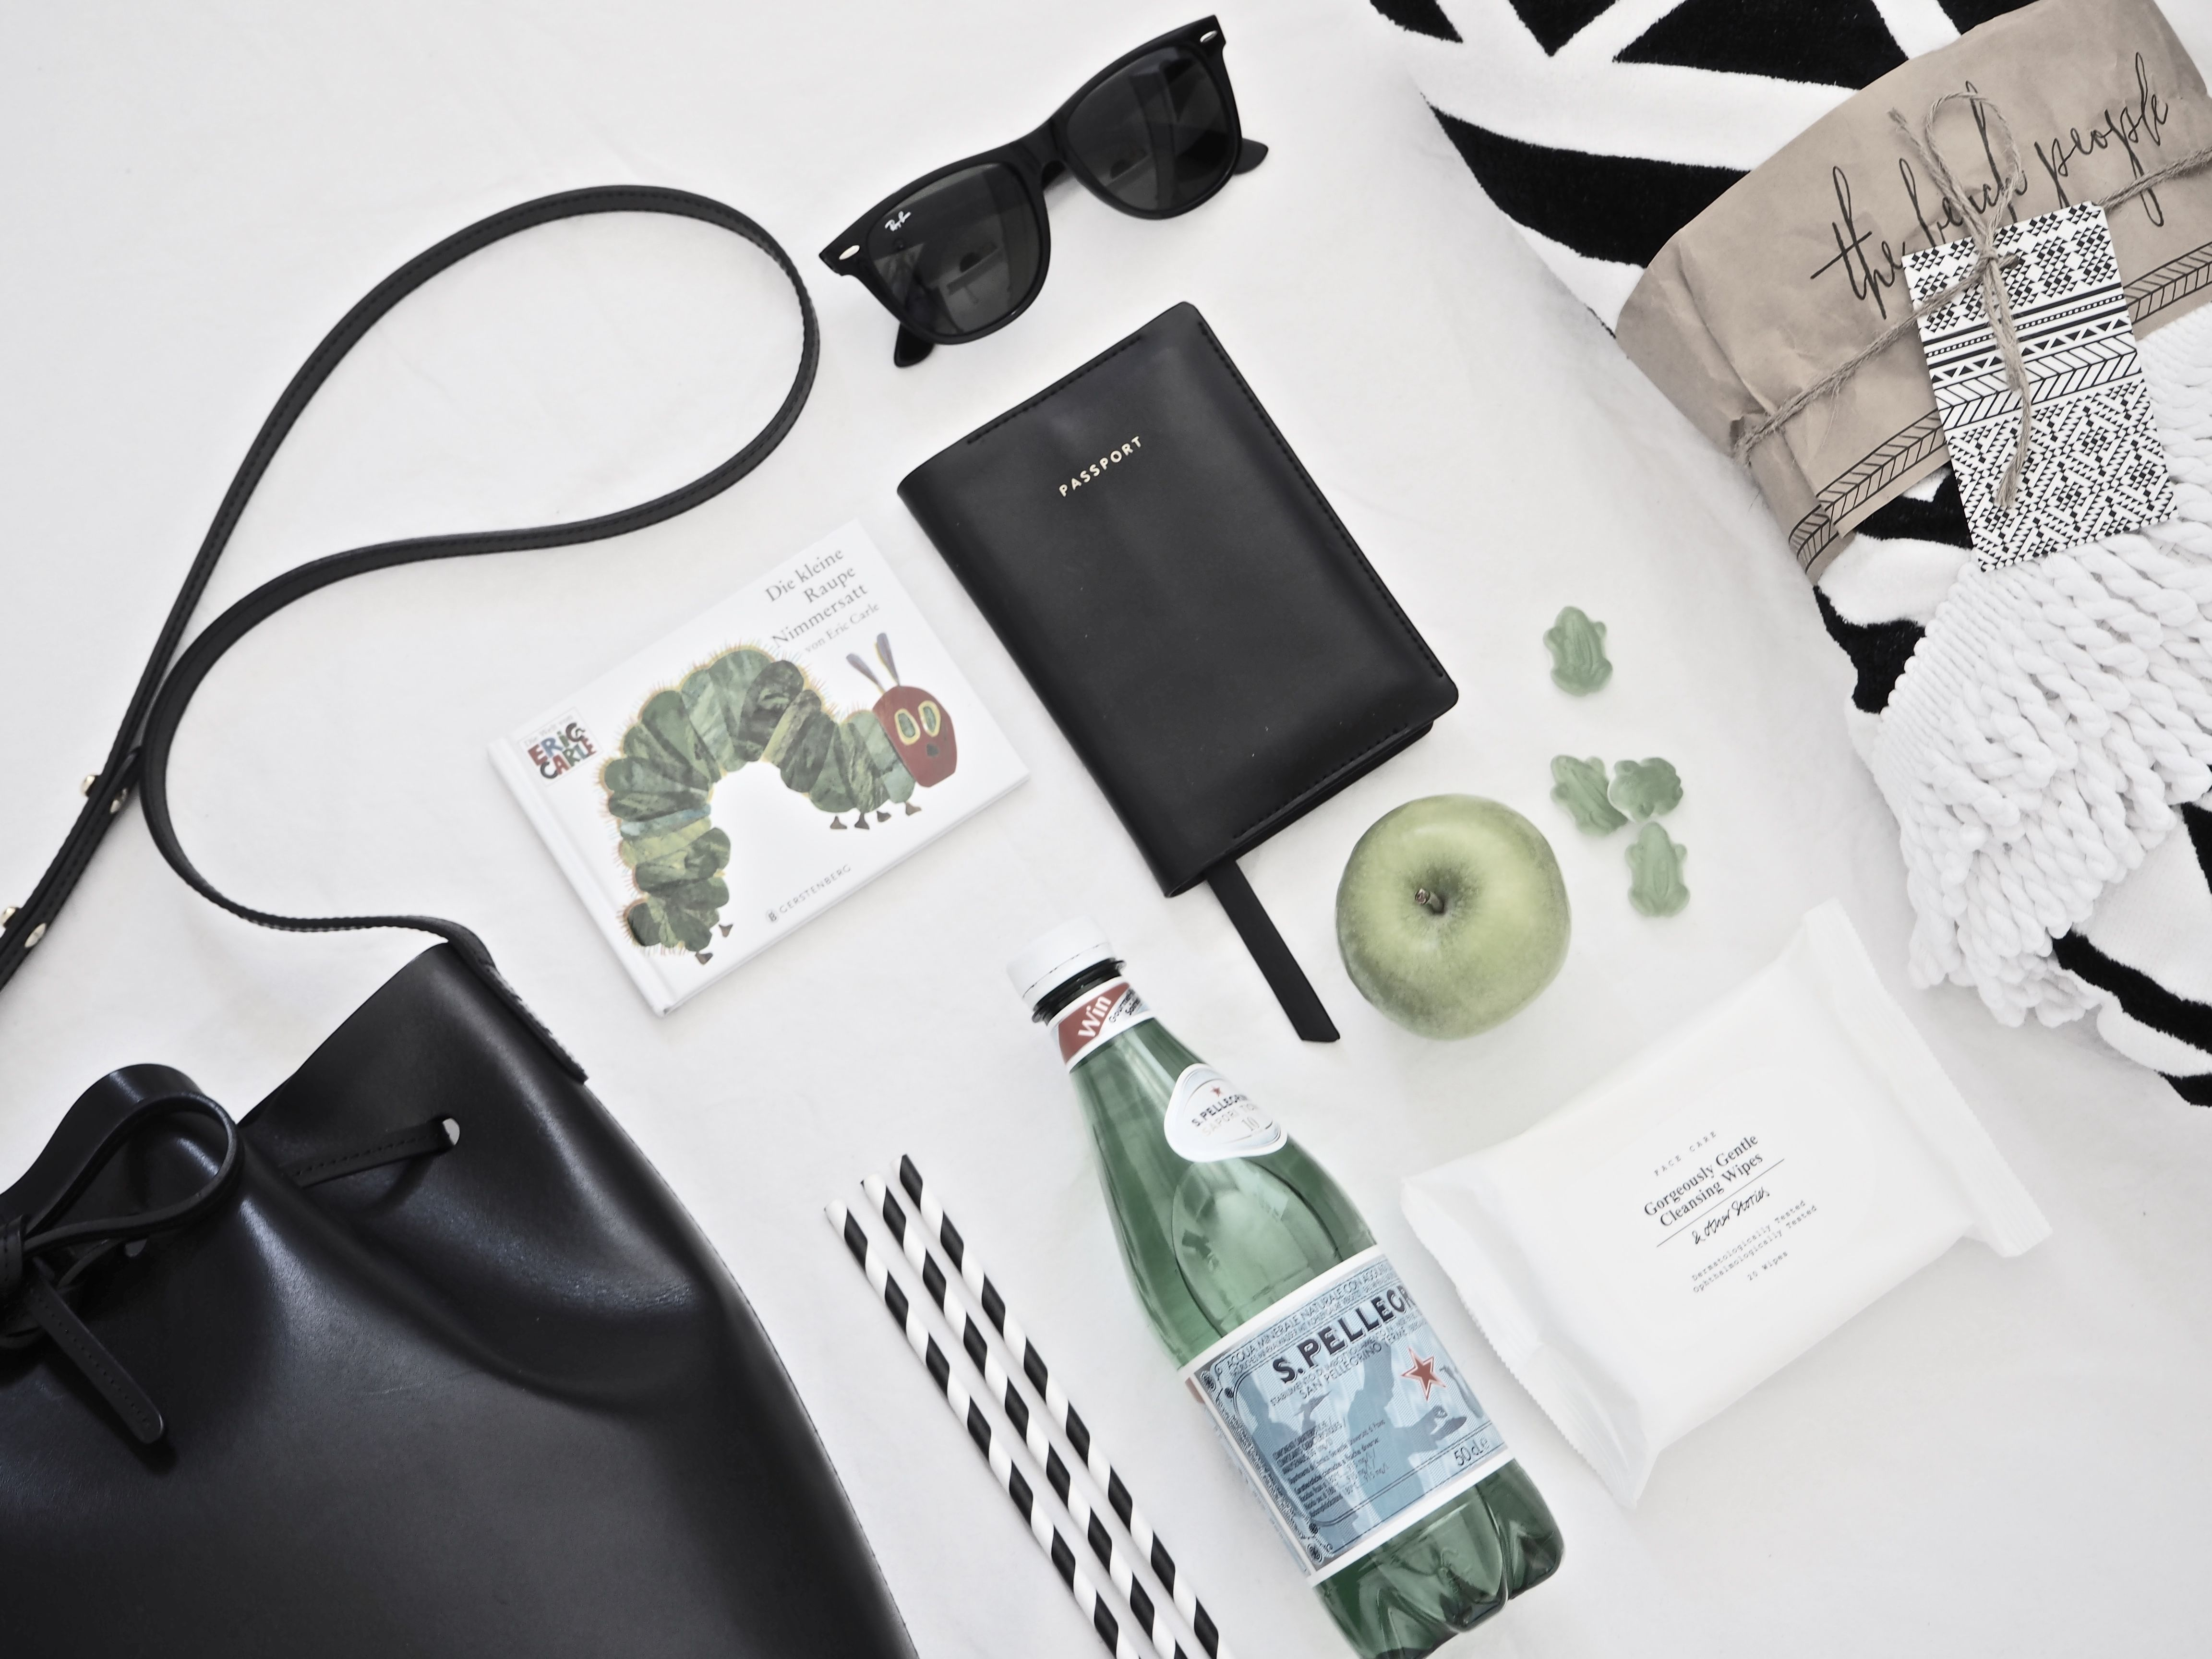 TRAVELING WITH TODDLERS // Lifestyle post by Mirjam from www.miiju.ch Mansur Gavriel Bucket Bag | The Beach People roundie Aztec | RAY BAN Wayfarer sunnies